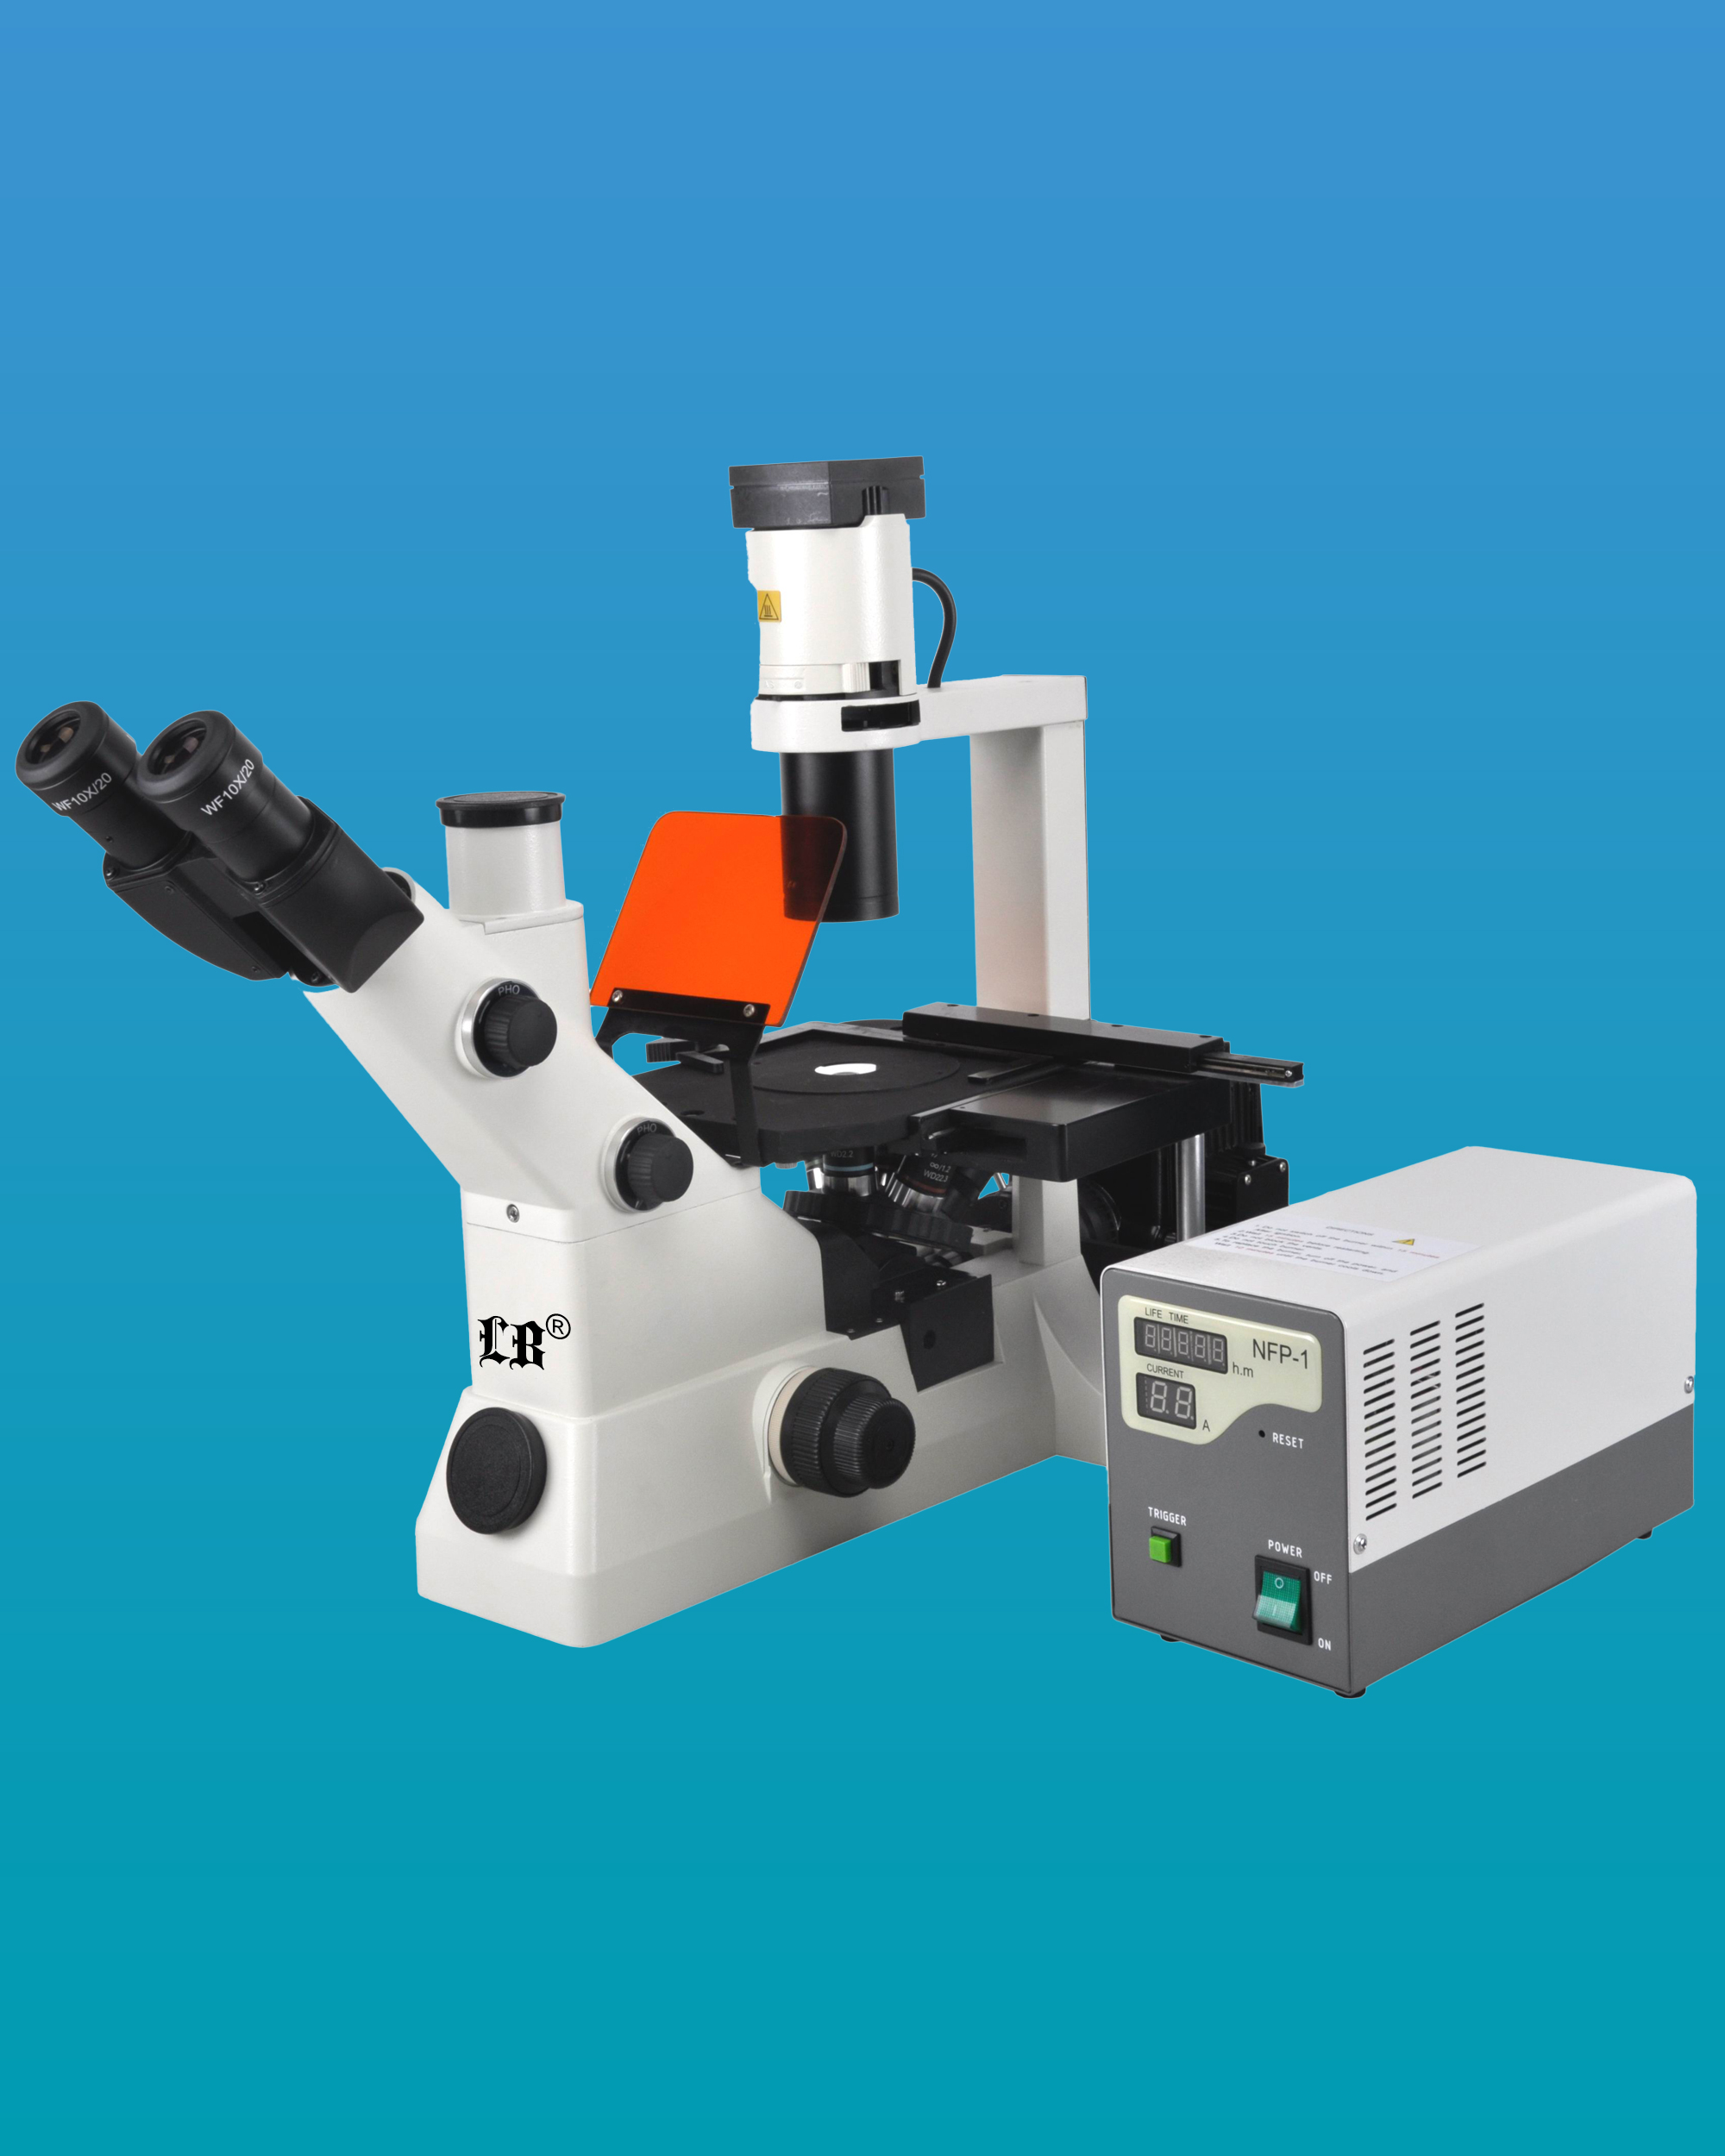 [LB-705] Trinocular Inverted Flourescent Biological Microscope w/ Wide Field & Infinite Optical System